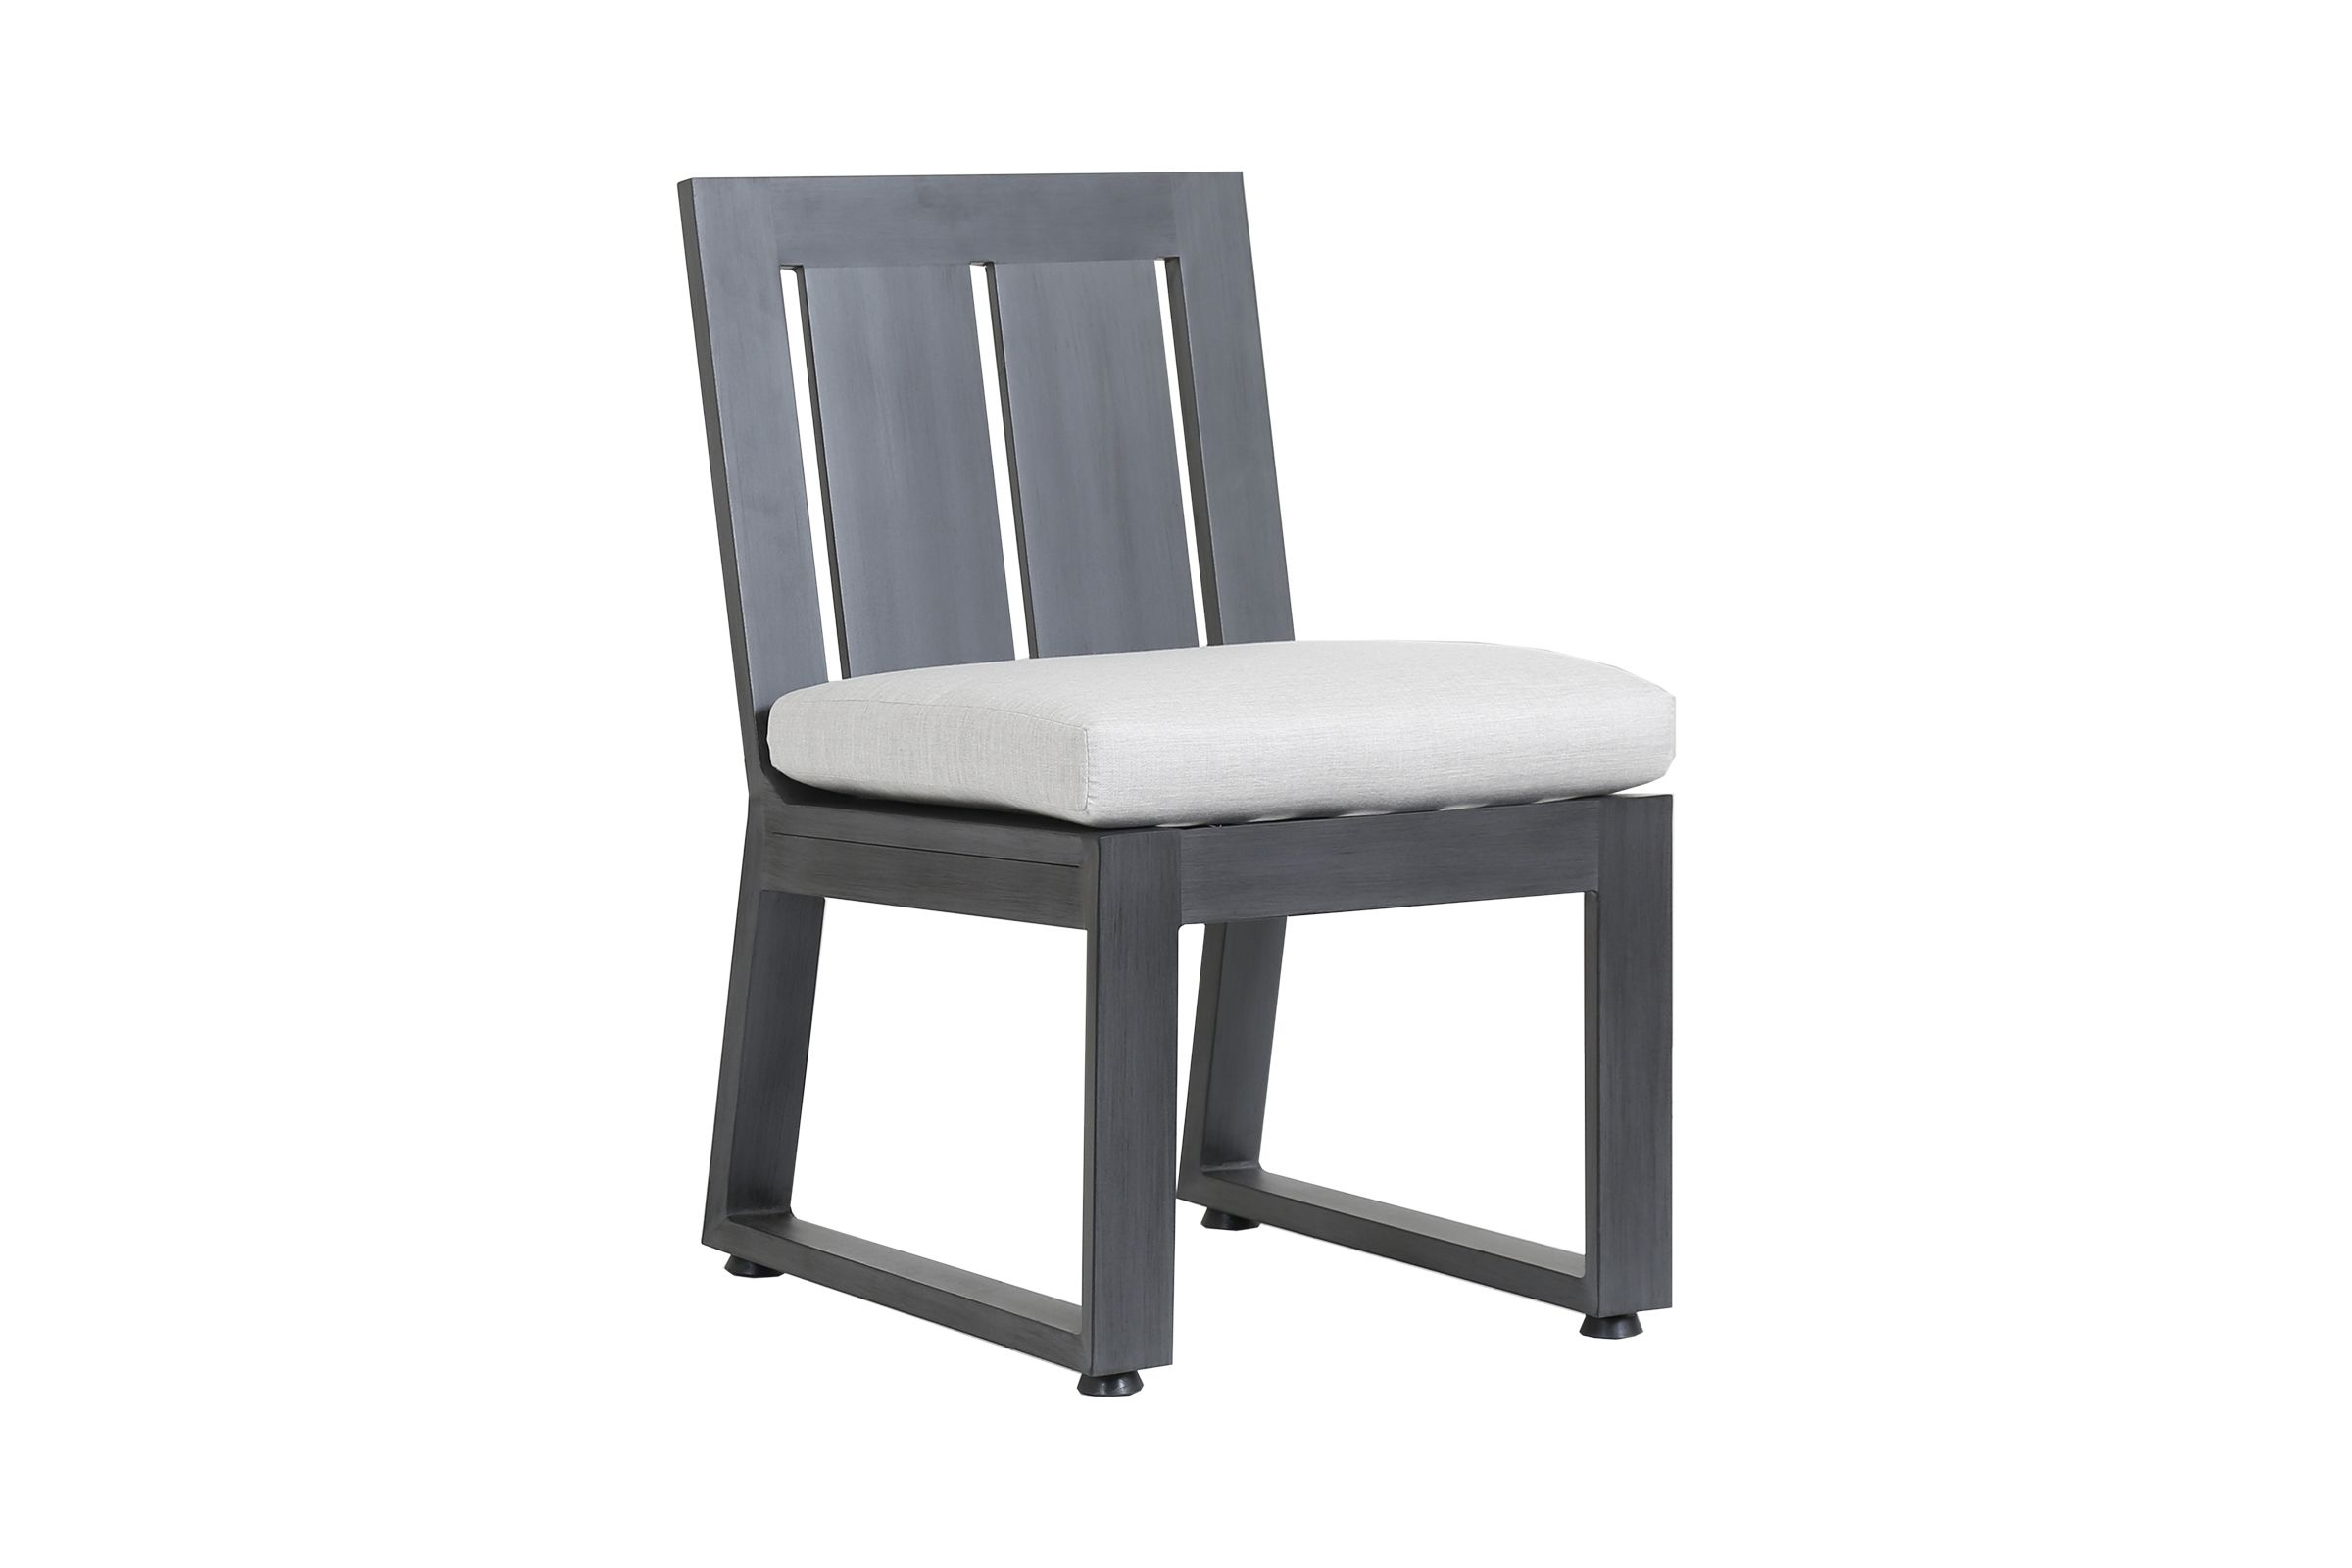 Redondo Armless Dining Chair 3801 1A Throughout Well Liked Armless Oatmeal Dining Chairs (#16 of 20)